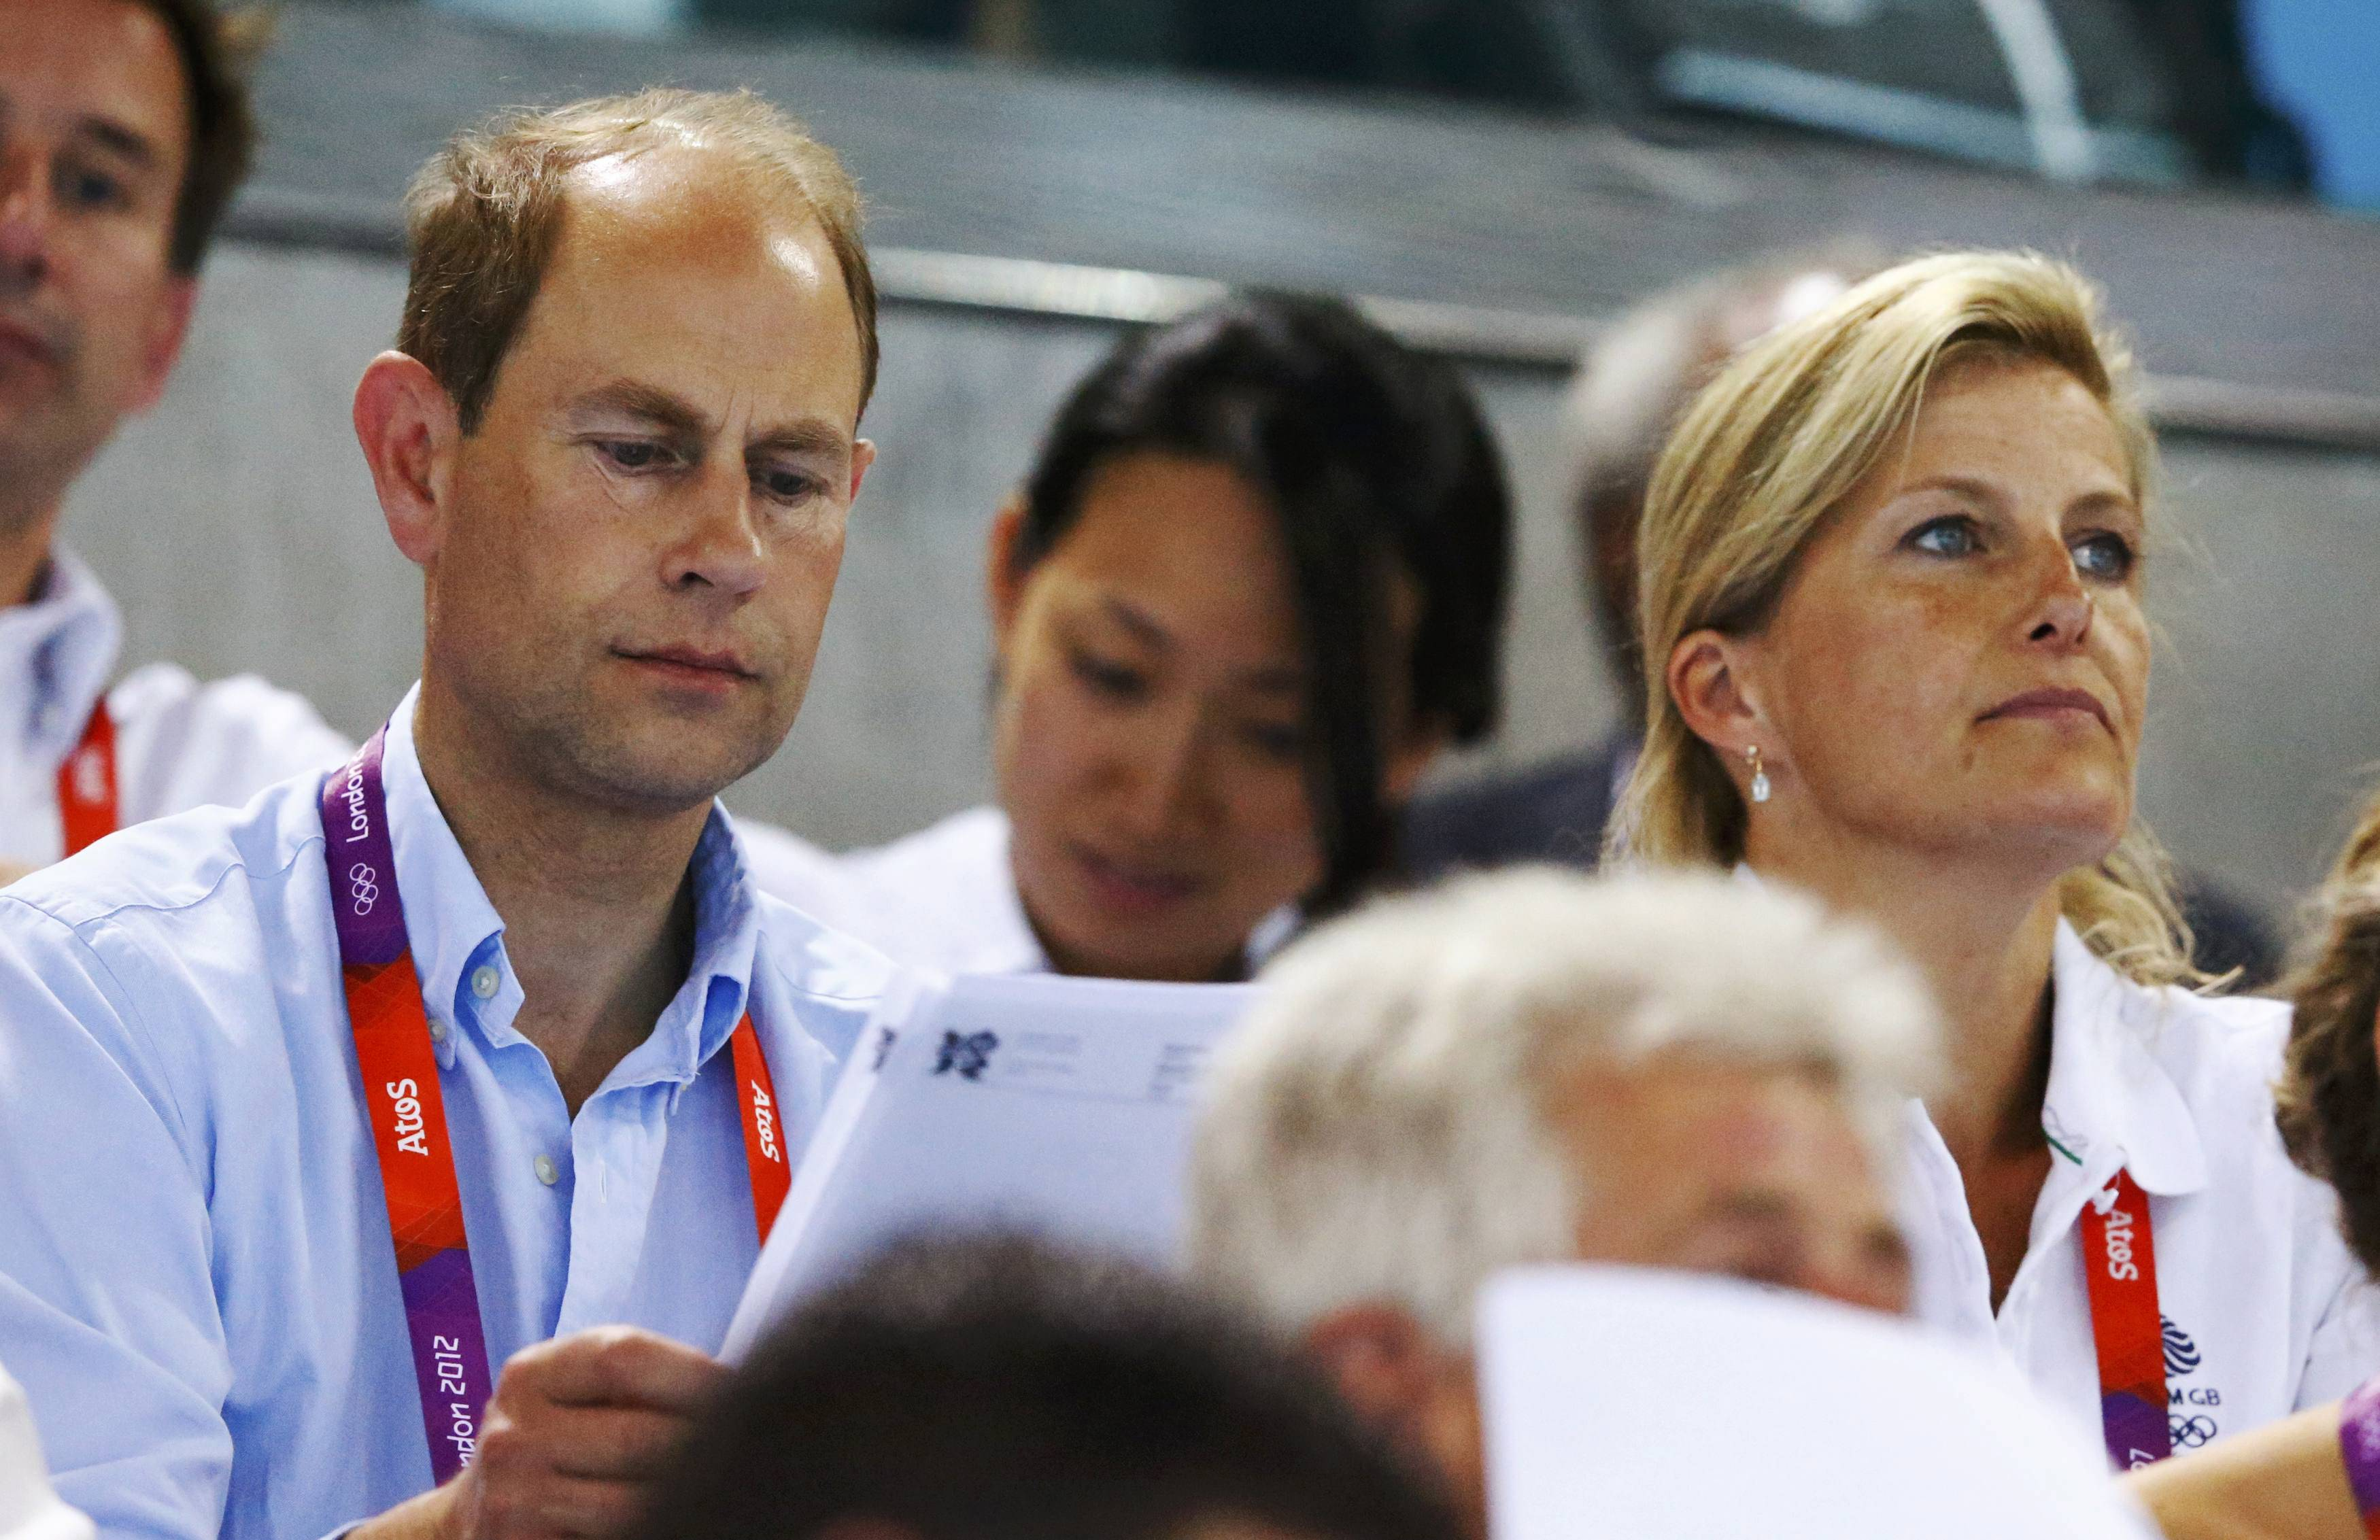 Britain's Prince Edward and his wife Sophie, Countess of Wessex, watch swimming events during day 7 of the London 2012 Olympic Games at the Aquatics Centre August 3, 2012. REUTERS/Michael Dalder (BRITAIN  - Tags: SPORT SWIMMING OLYMPICS ROYALS ENTERTAINMENT)